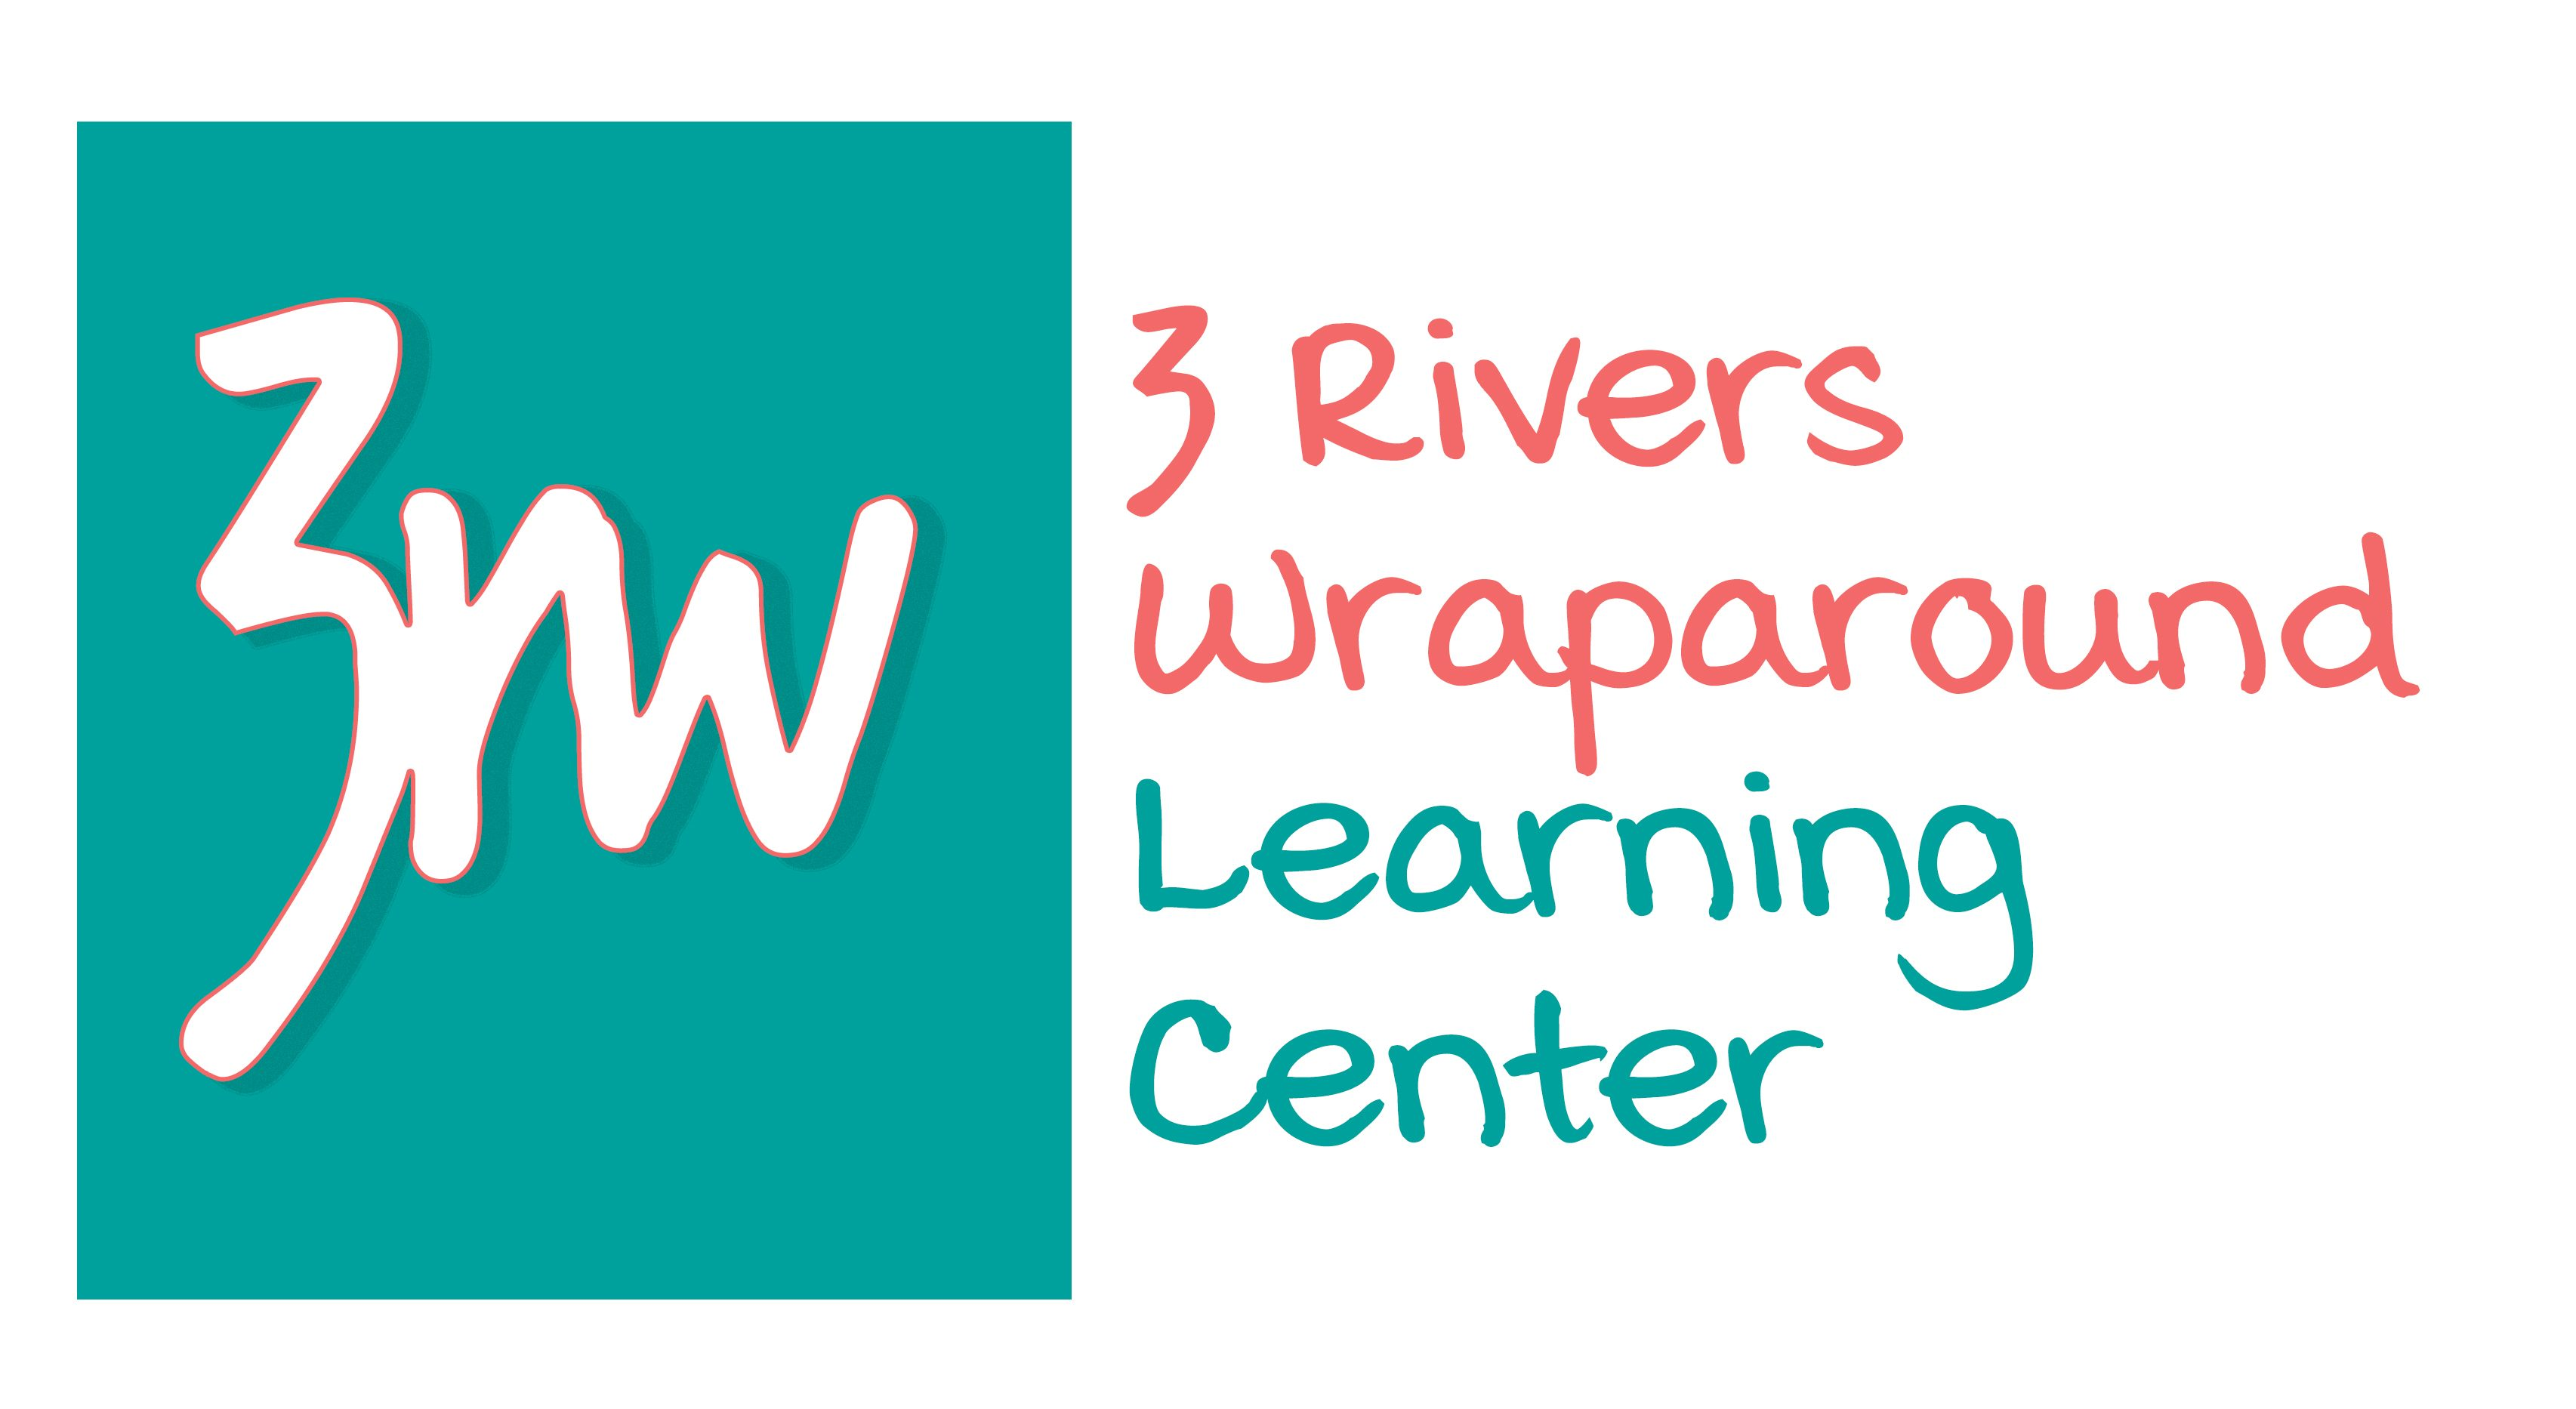 3 Rivers Wraparound Learning Center